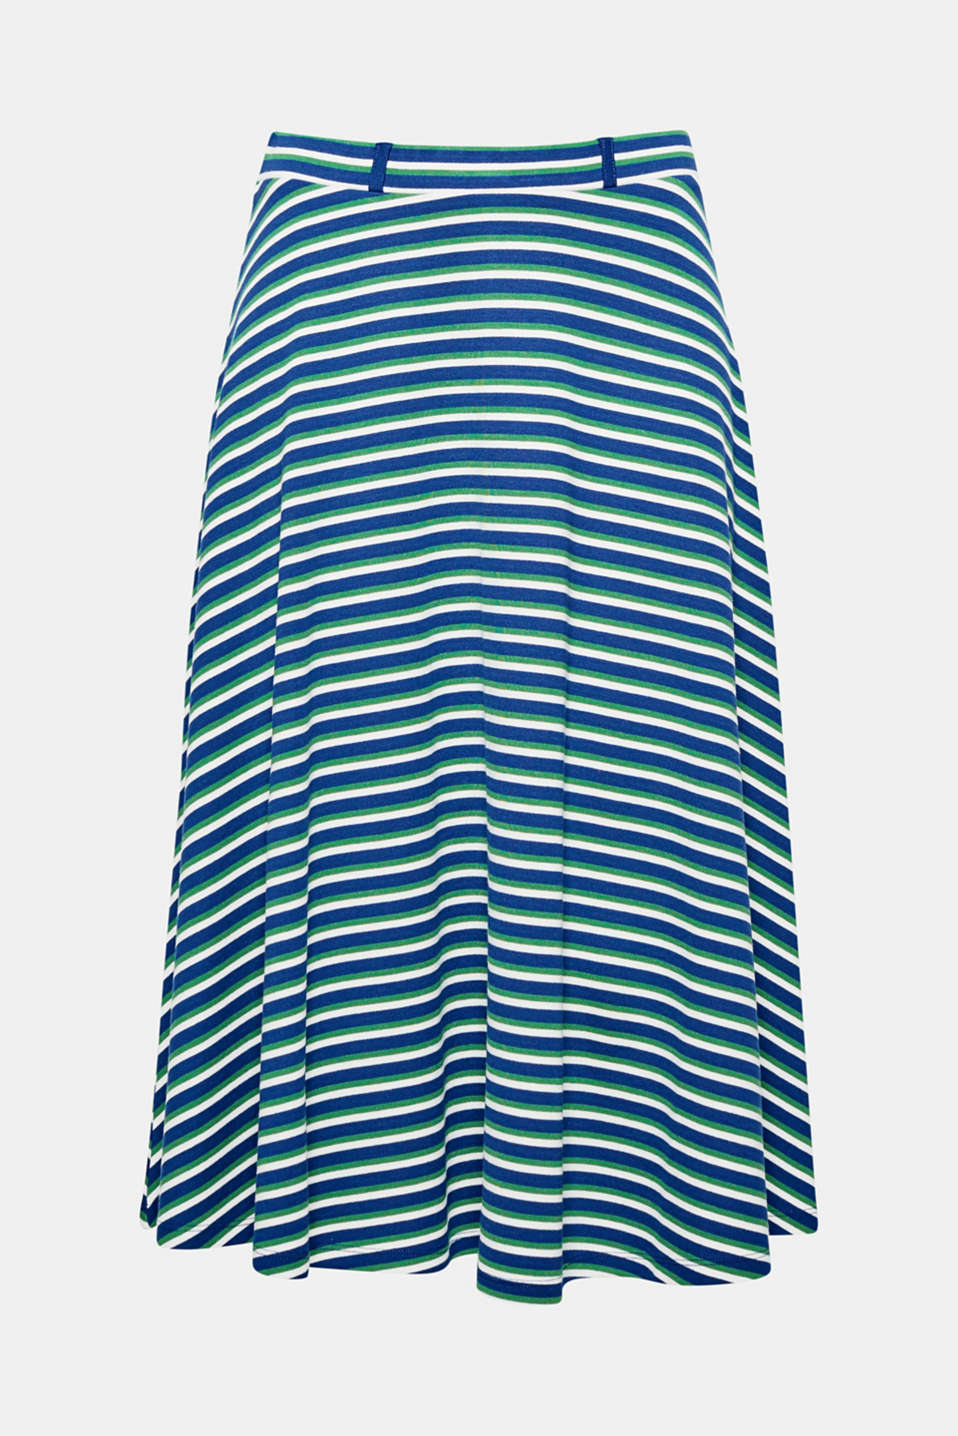 Beautifully swirling: this wide flared skirt in beautifully draped stretch jersey will lift your mood with its stripes!